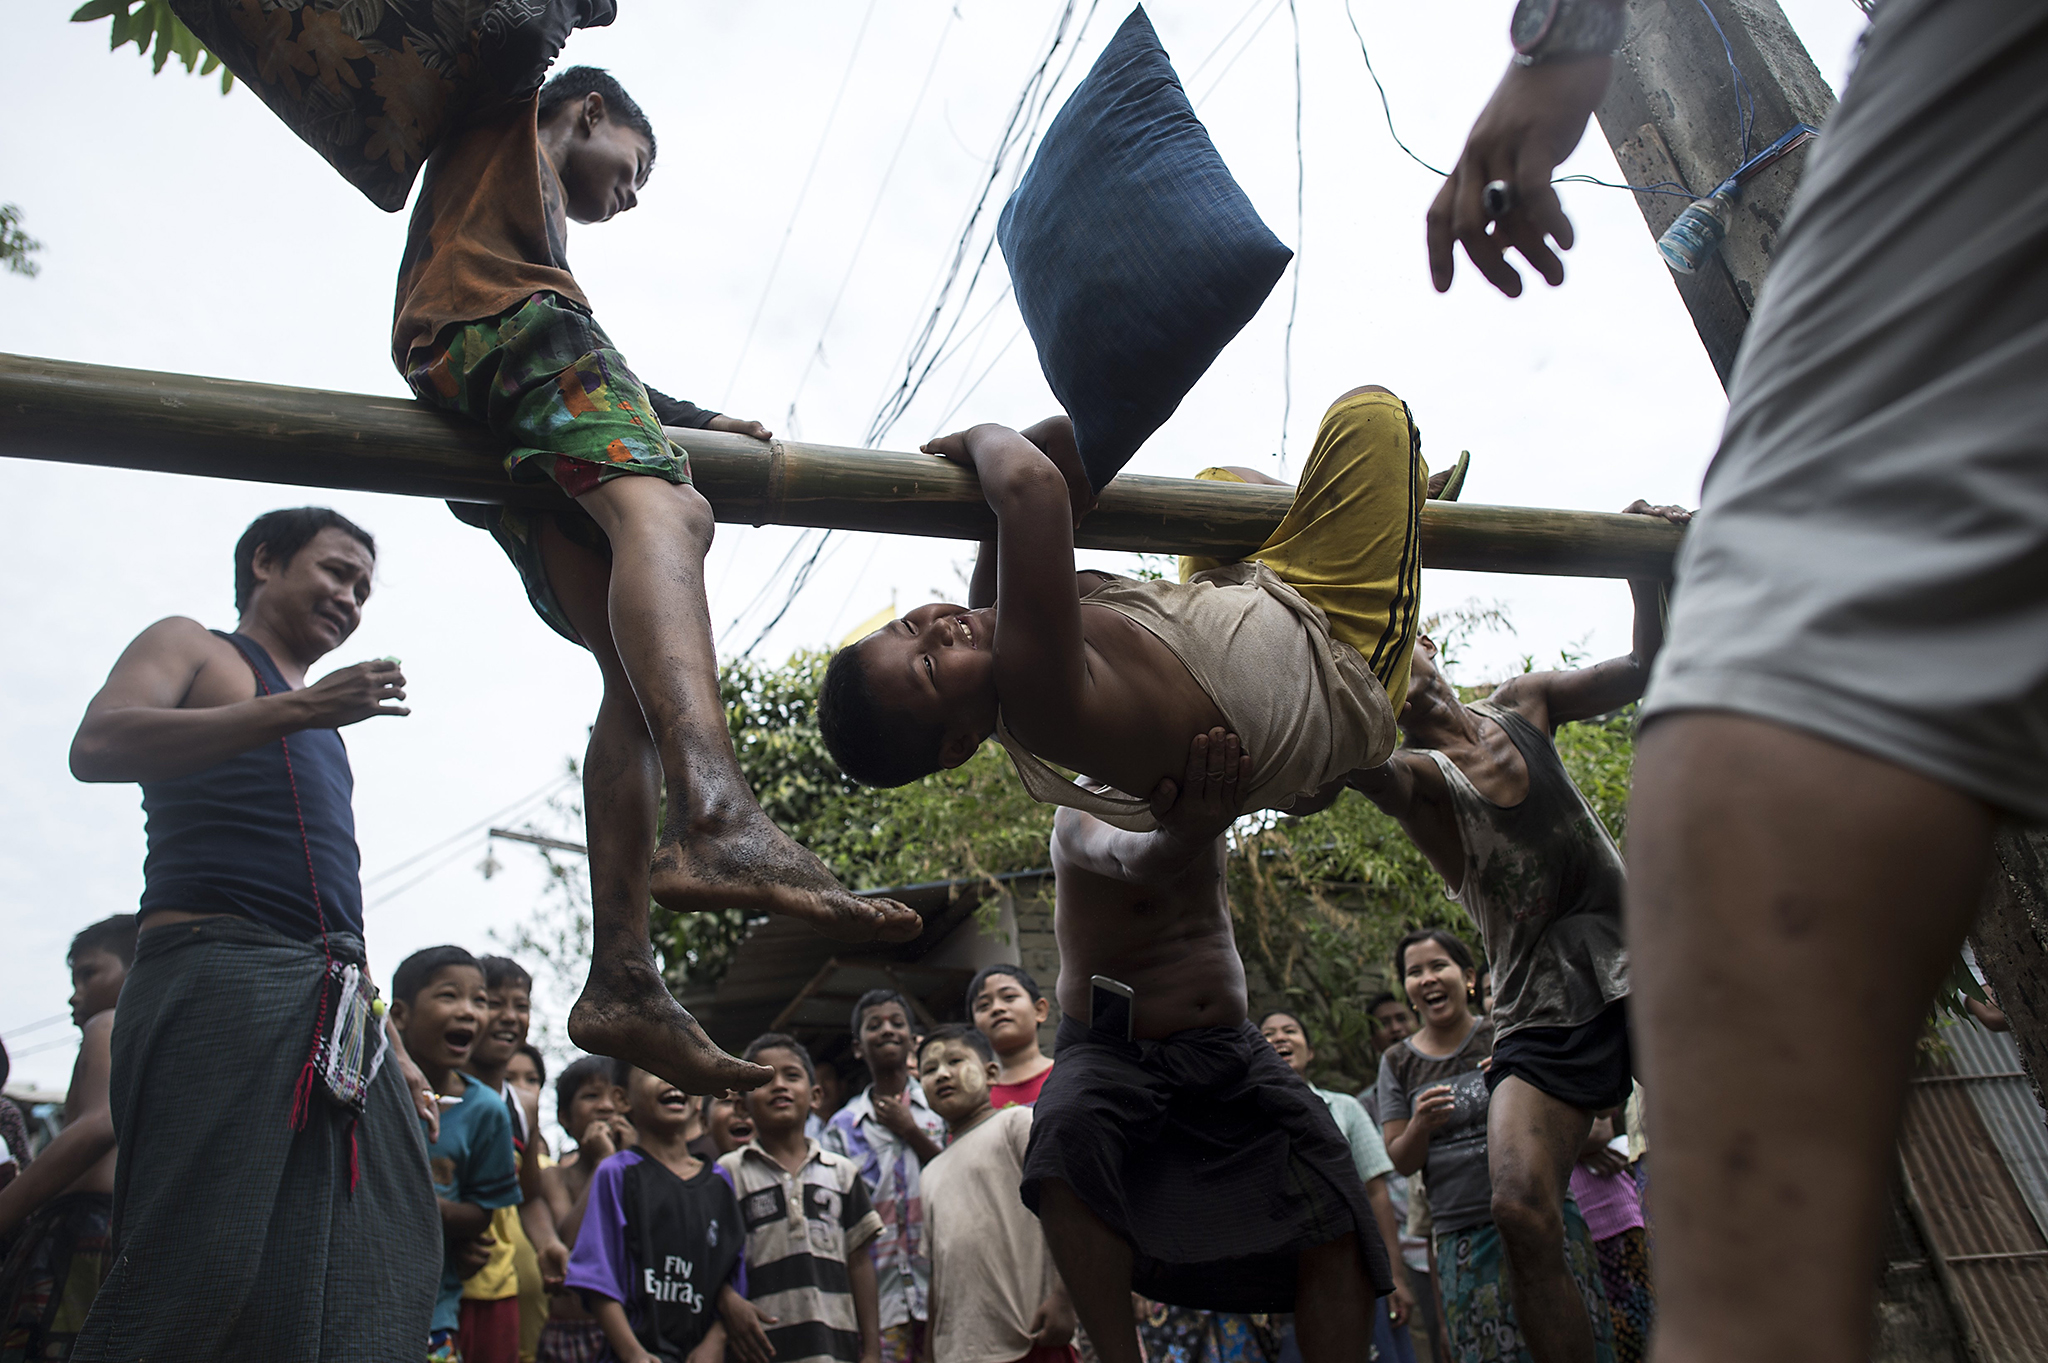 Youths play a traditional pillow fight game on a bamboo pole during festivities marking the 69th anniversary of Myanmar Independence Day on the outskirts of Yangon on January 4, 2017.  Various traditional and local events were held on the holiday which marks the 69th anniversary of the country known before as Burma when British colonial rule ended on January 4, 1948. / AFP PHOTO / YE AUNG THUYE AUNG THU/AFP/Getty Images